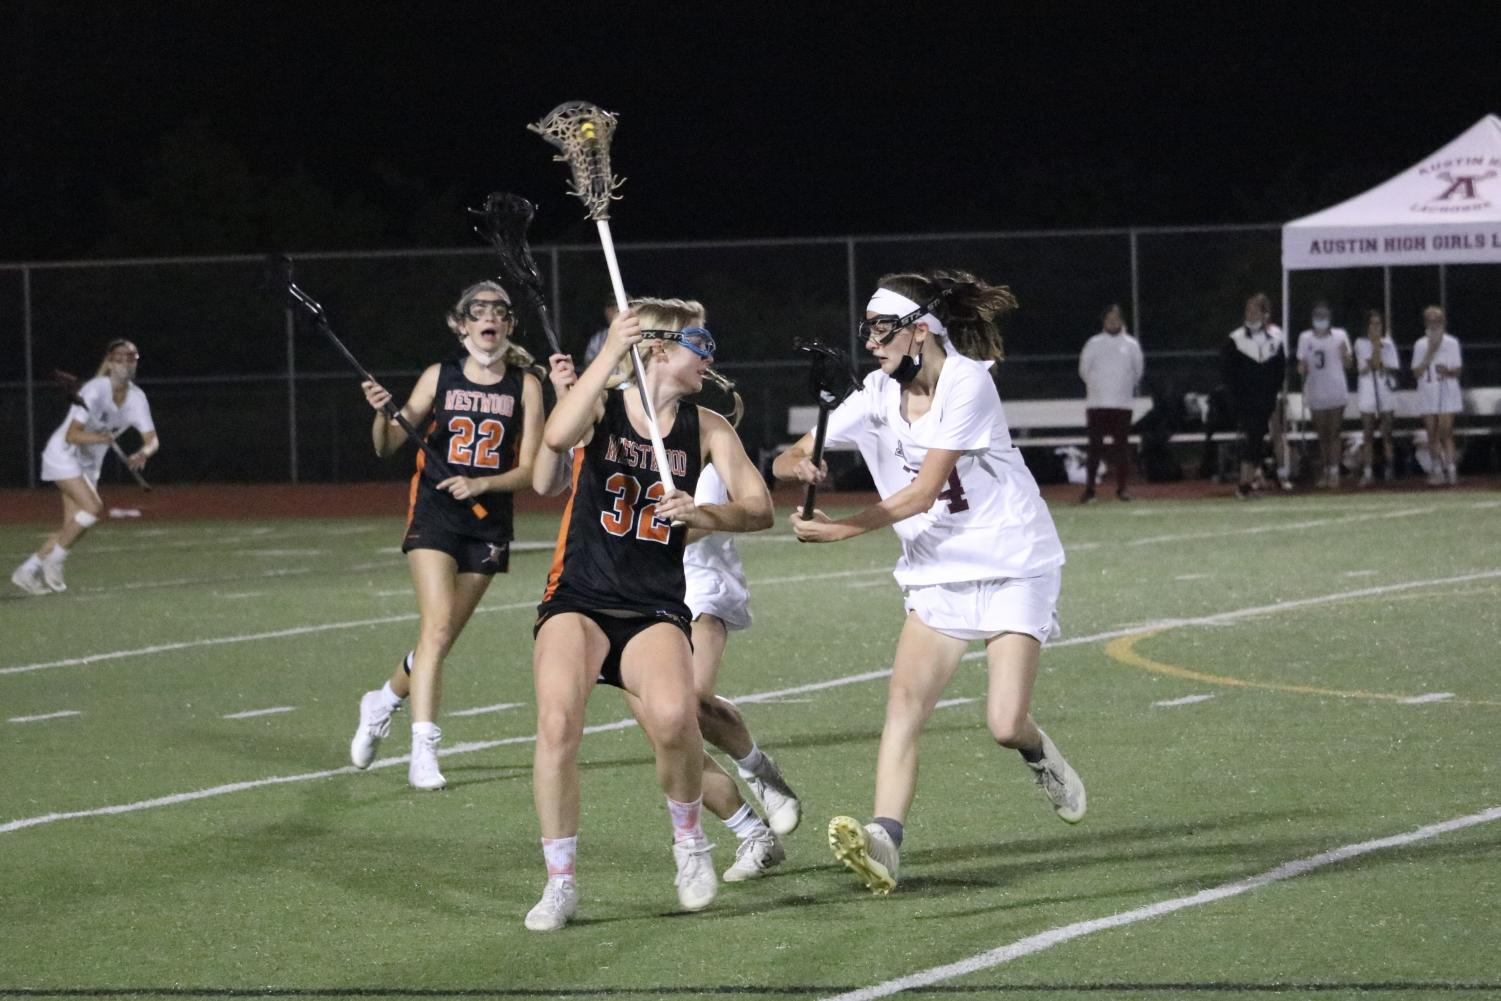 Varsity+Girls%27+Lacrosse+Upsets+Top-Seeded+Austin+High+13-10